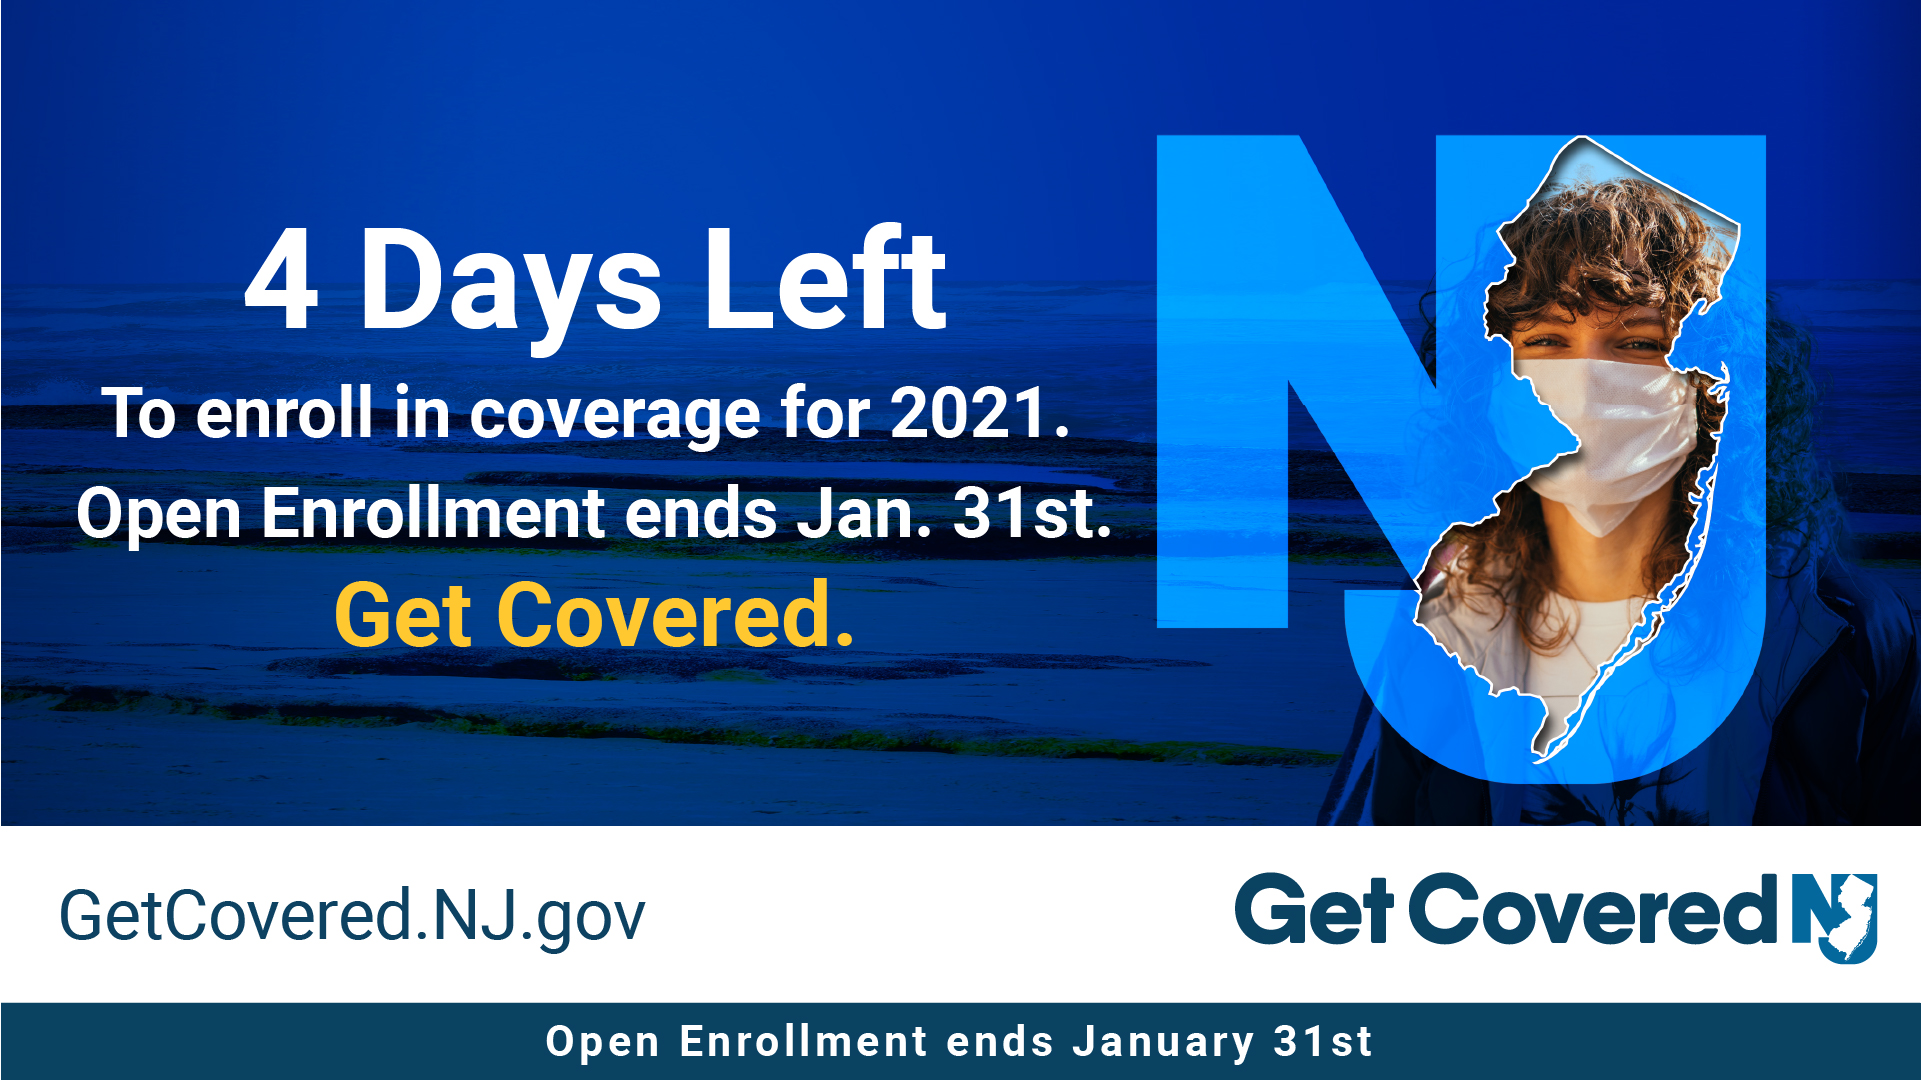 Image Contains screenshot of 4 Days left to enroll in coverage